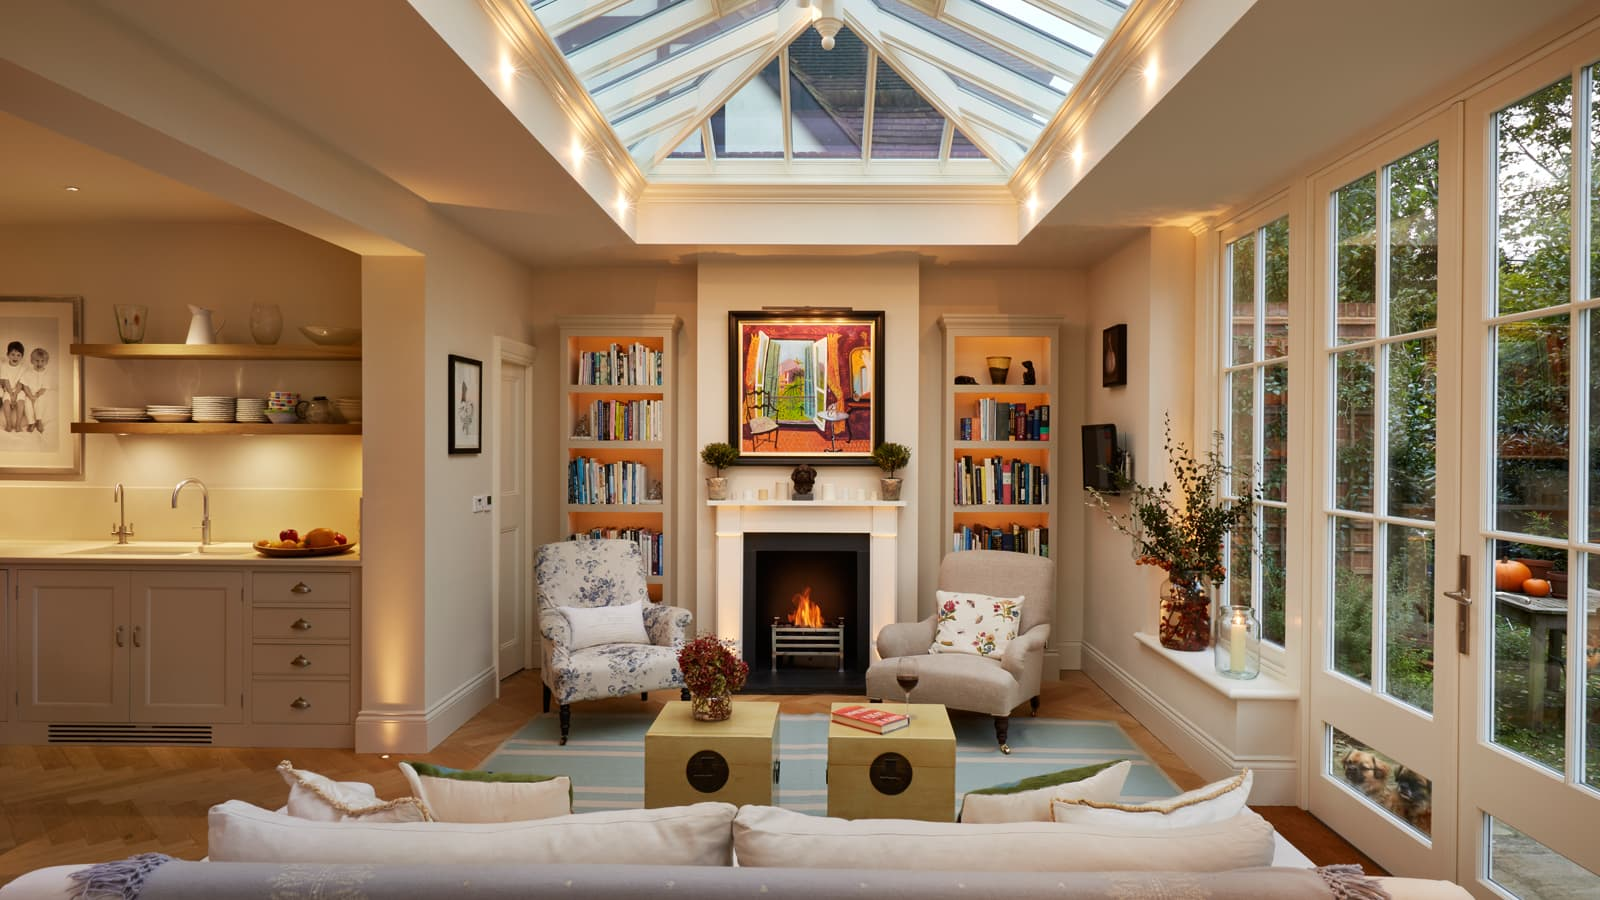 Modern Fireplace Images Amazing Modern Fireplace Designs For A Cosy Orangery This Winter